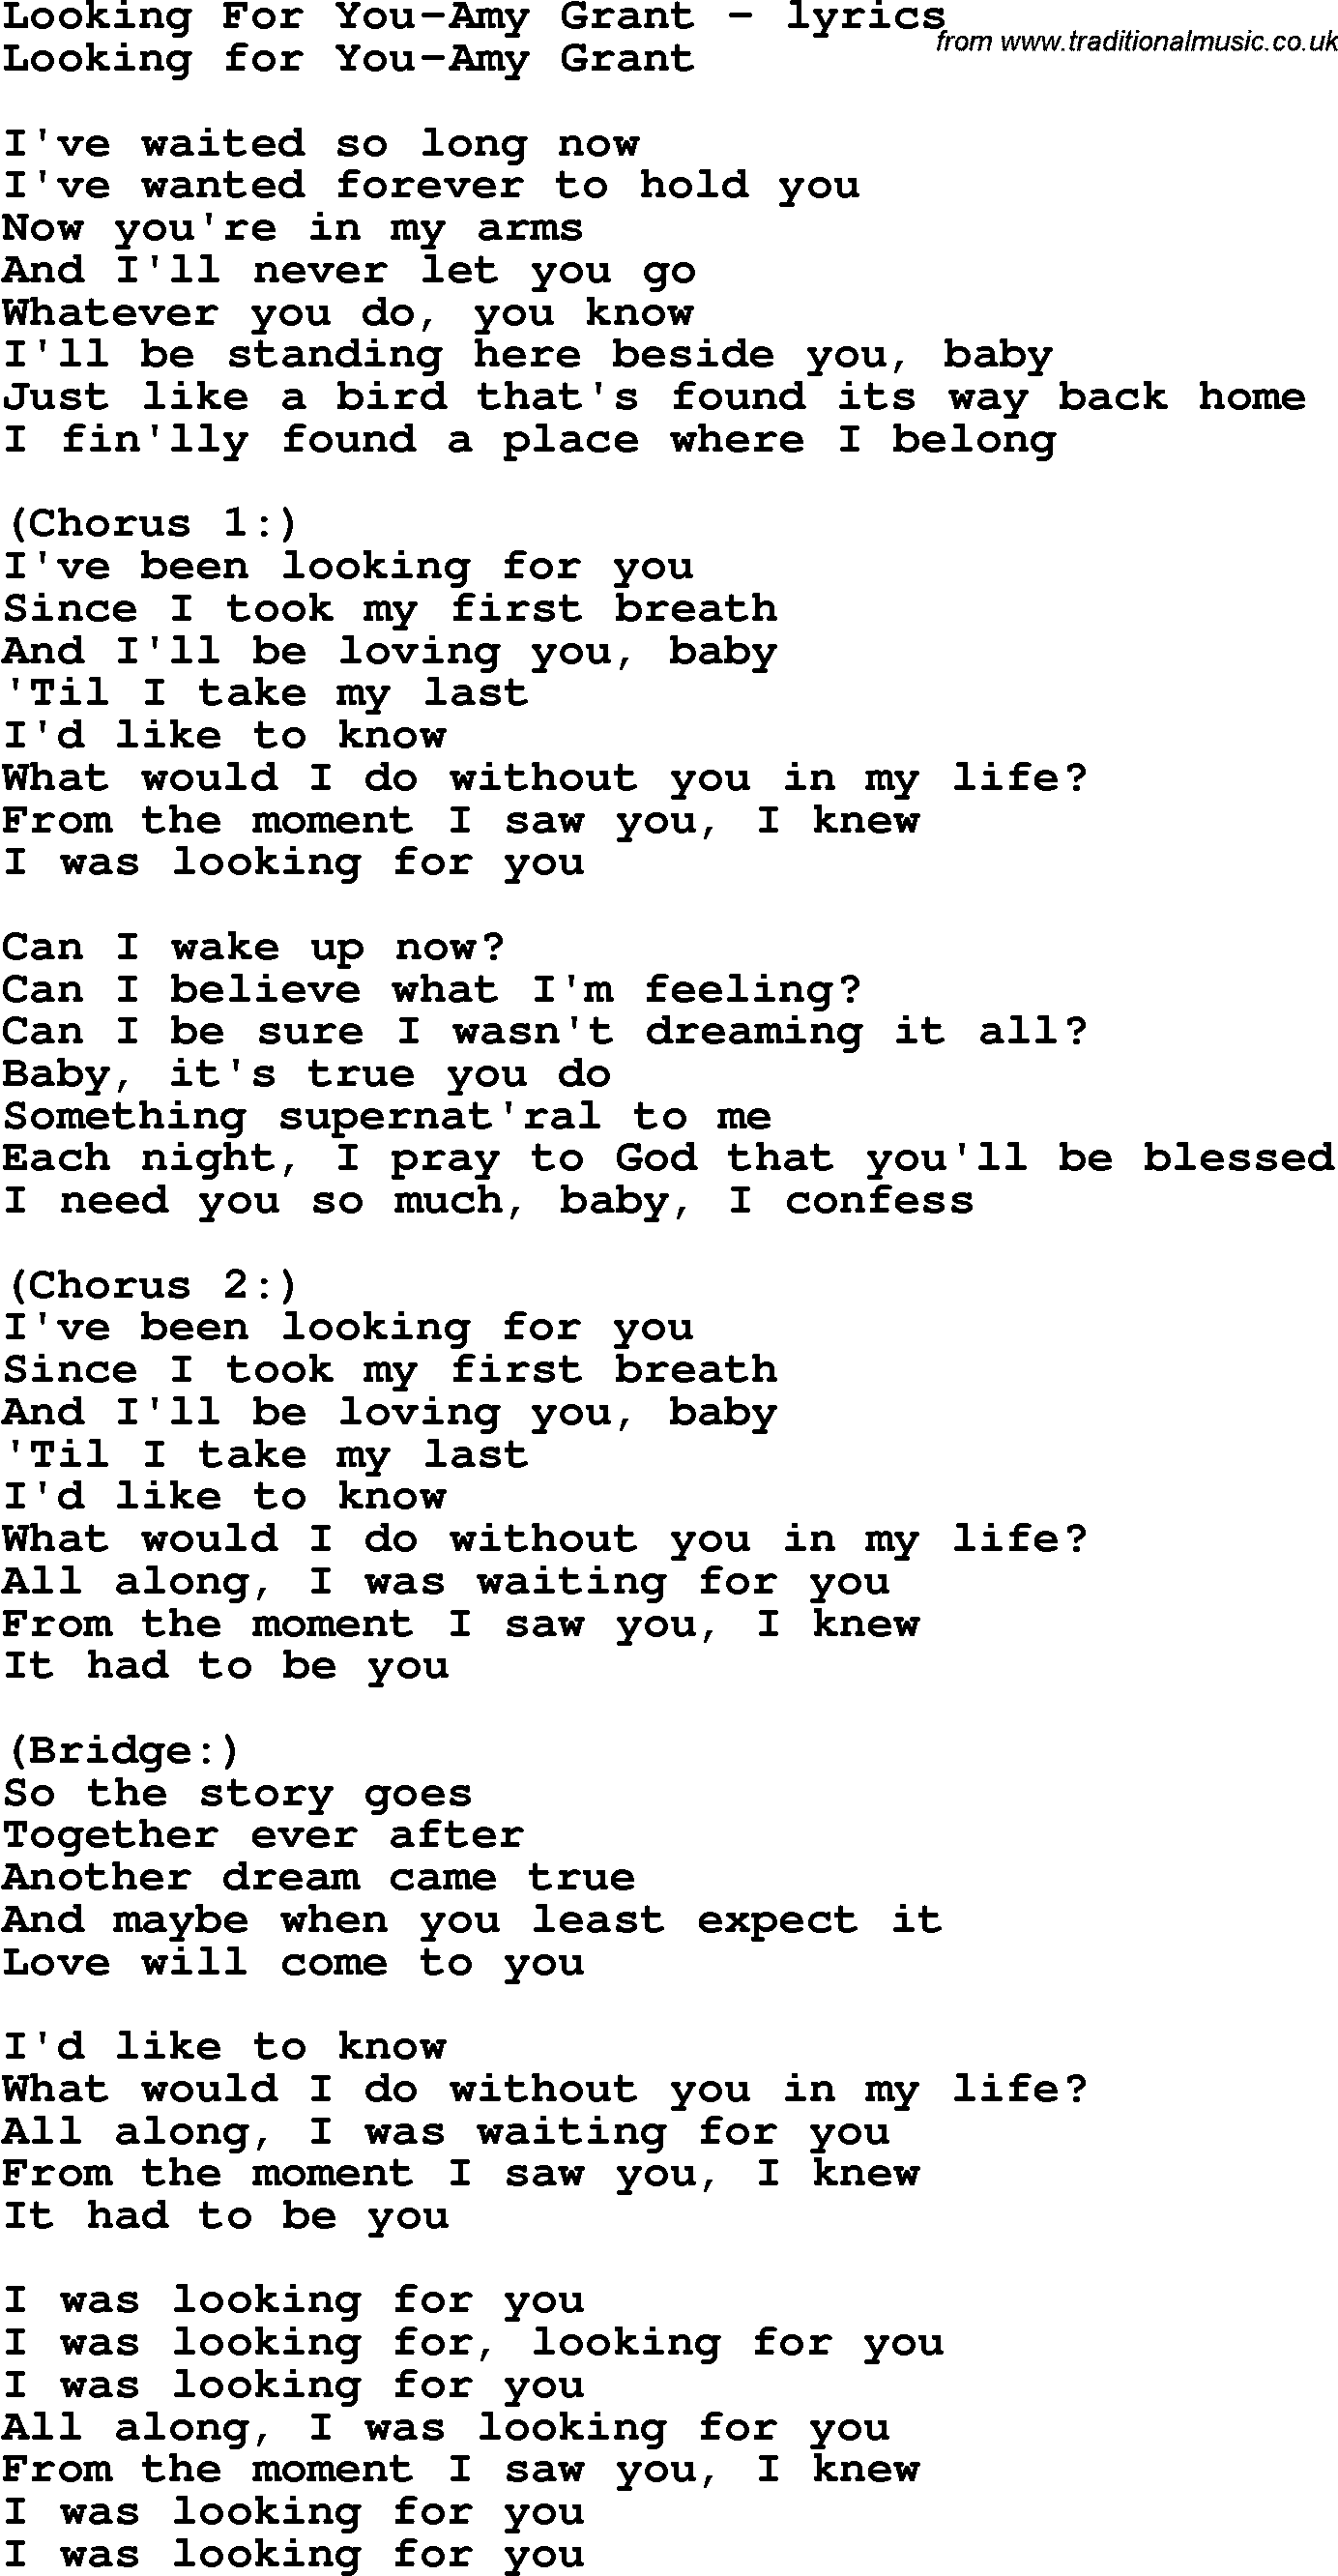 Looking for a girl like you lyrics